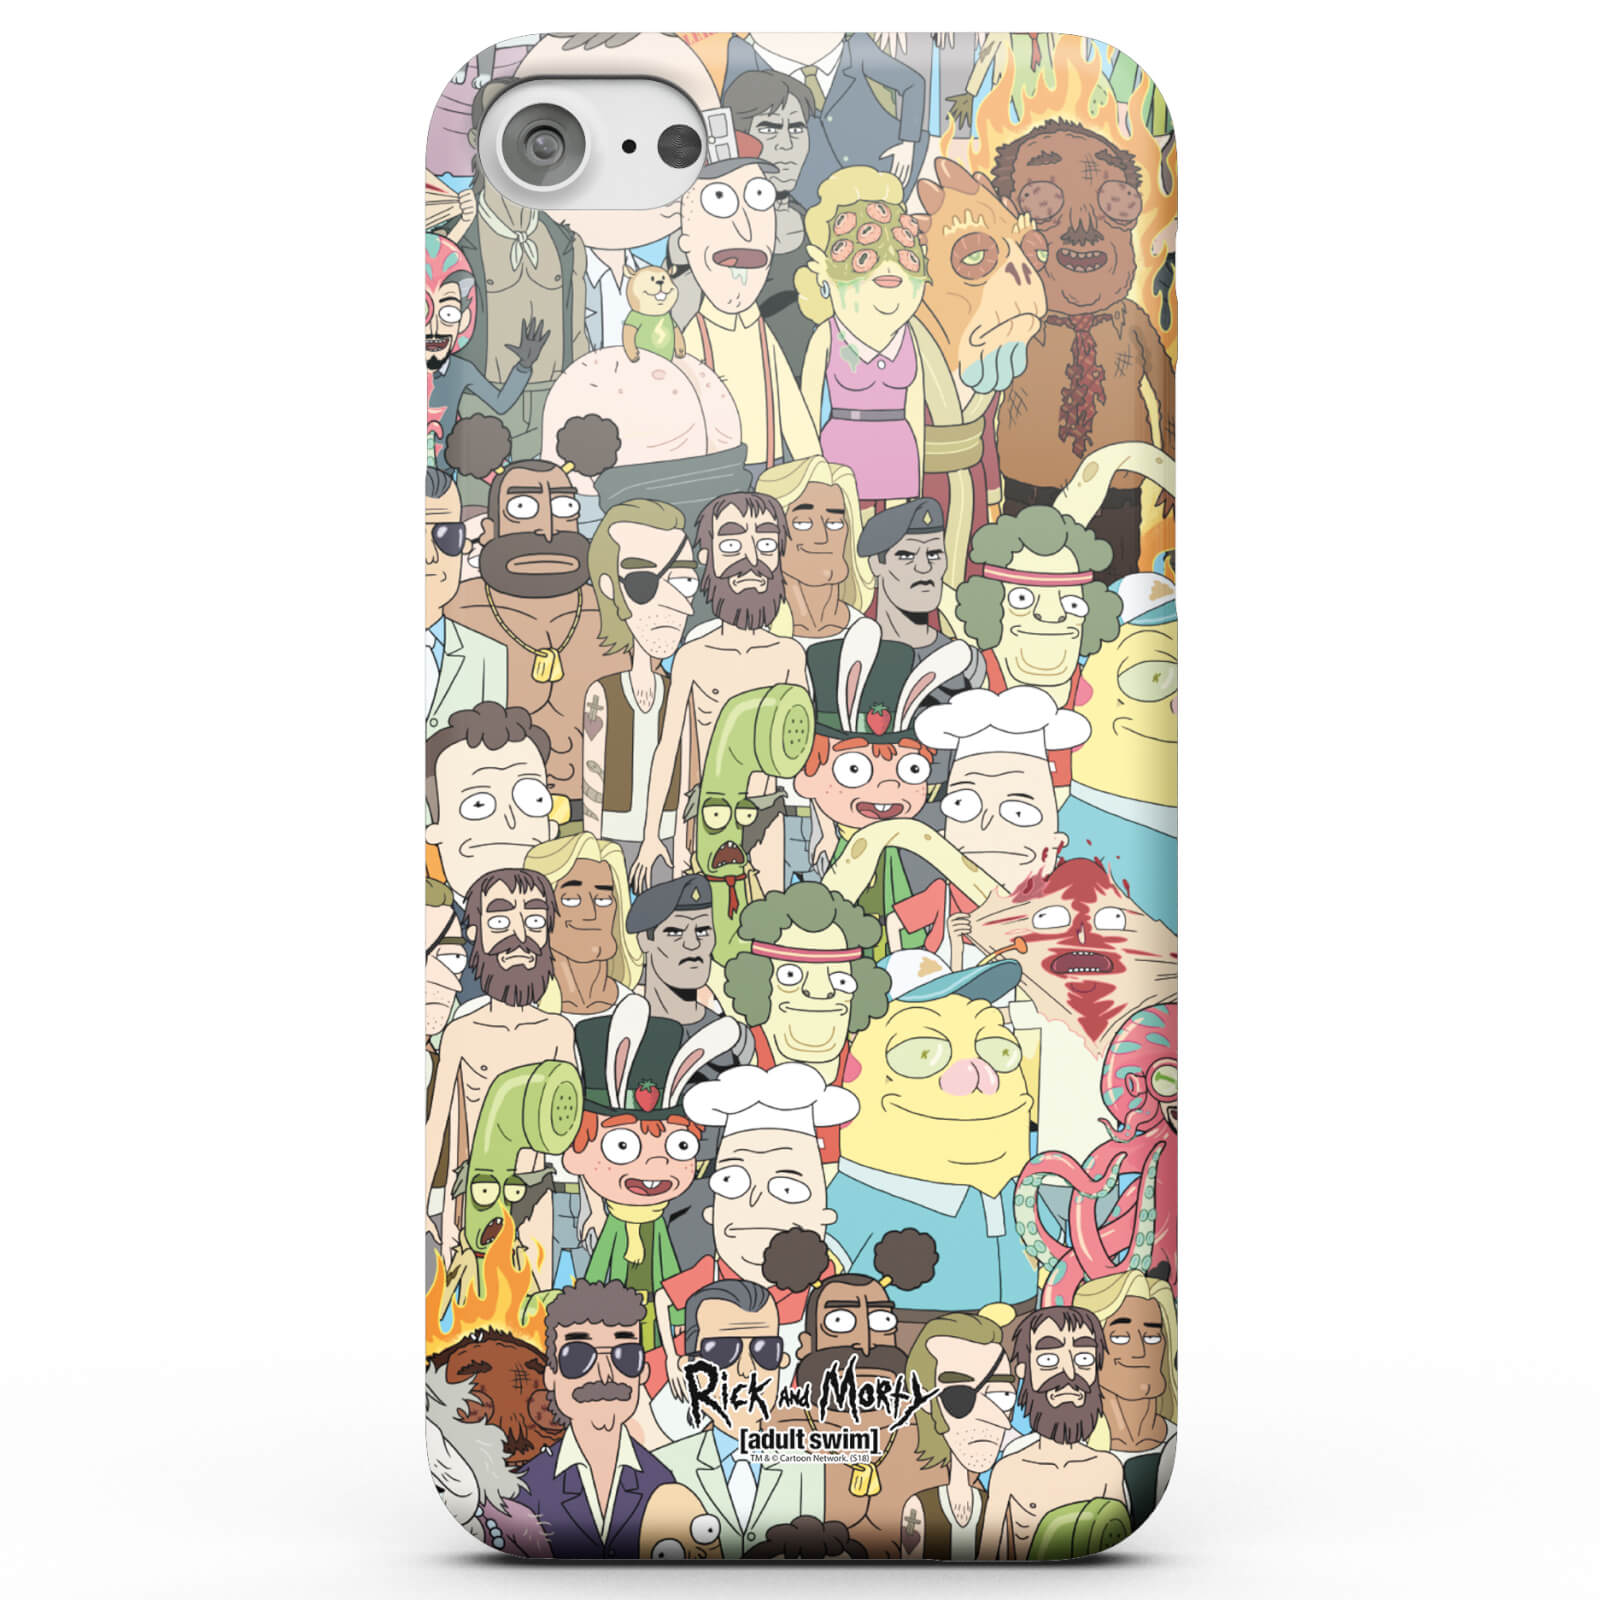 Funda Móvil Rick y Morty Interdimentional TV Characters para iPhone y Android - iPhone 6S - Carcasa rígida - Mate de Rick and Morty